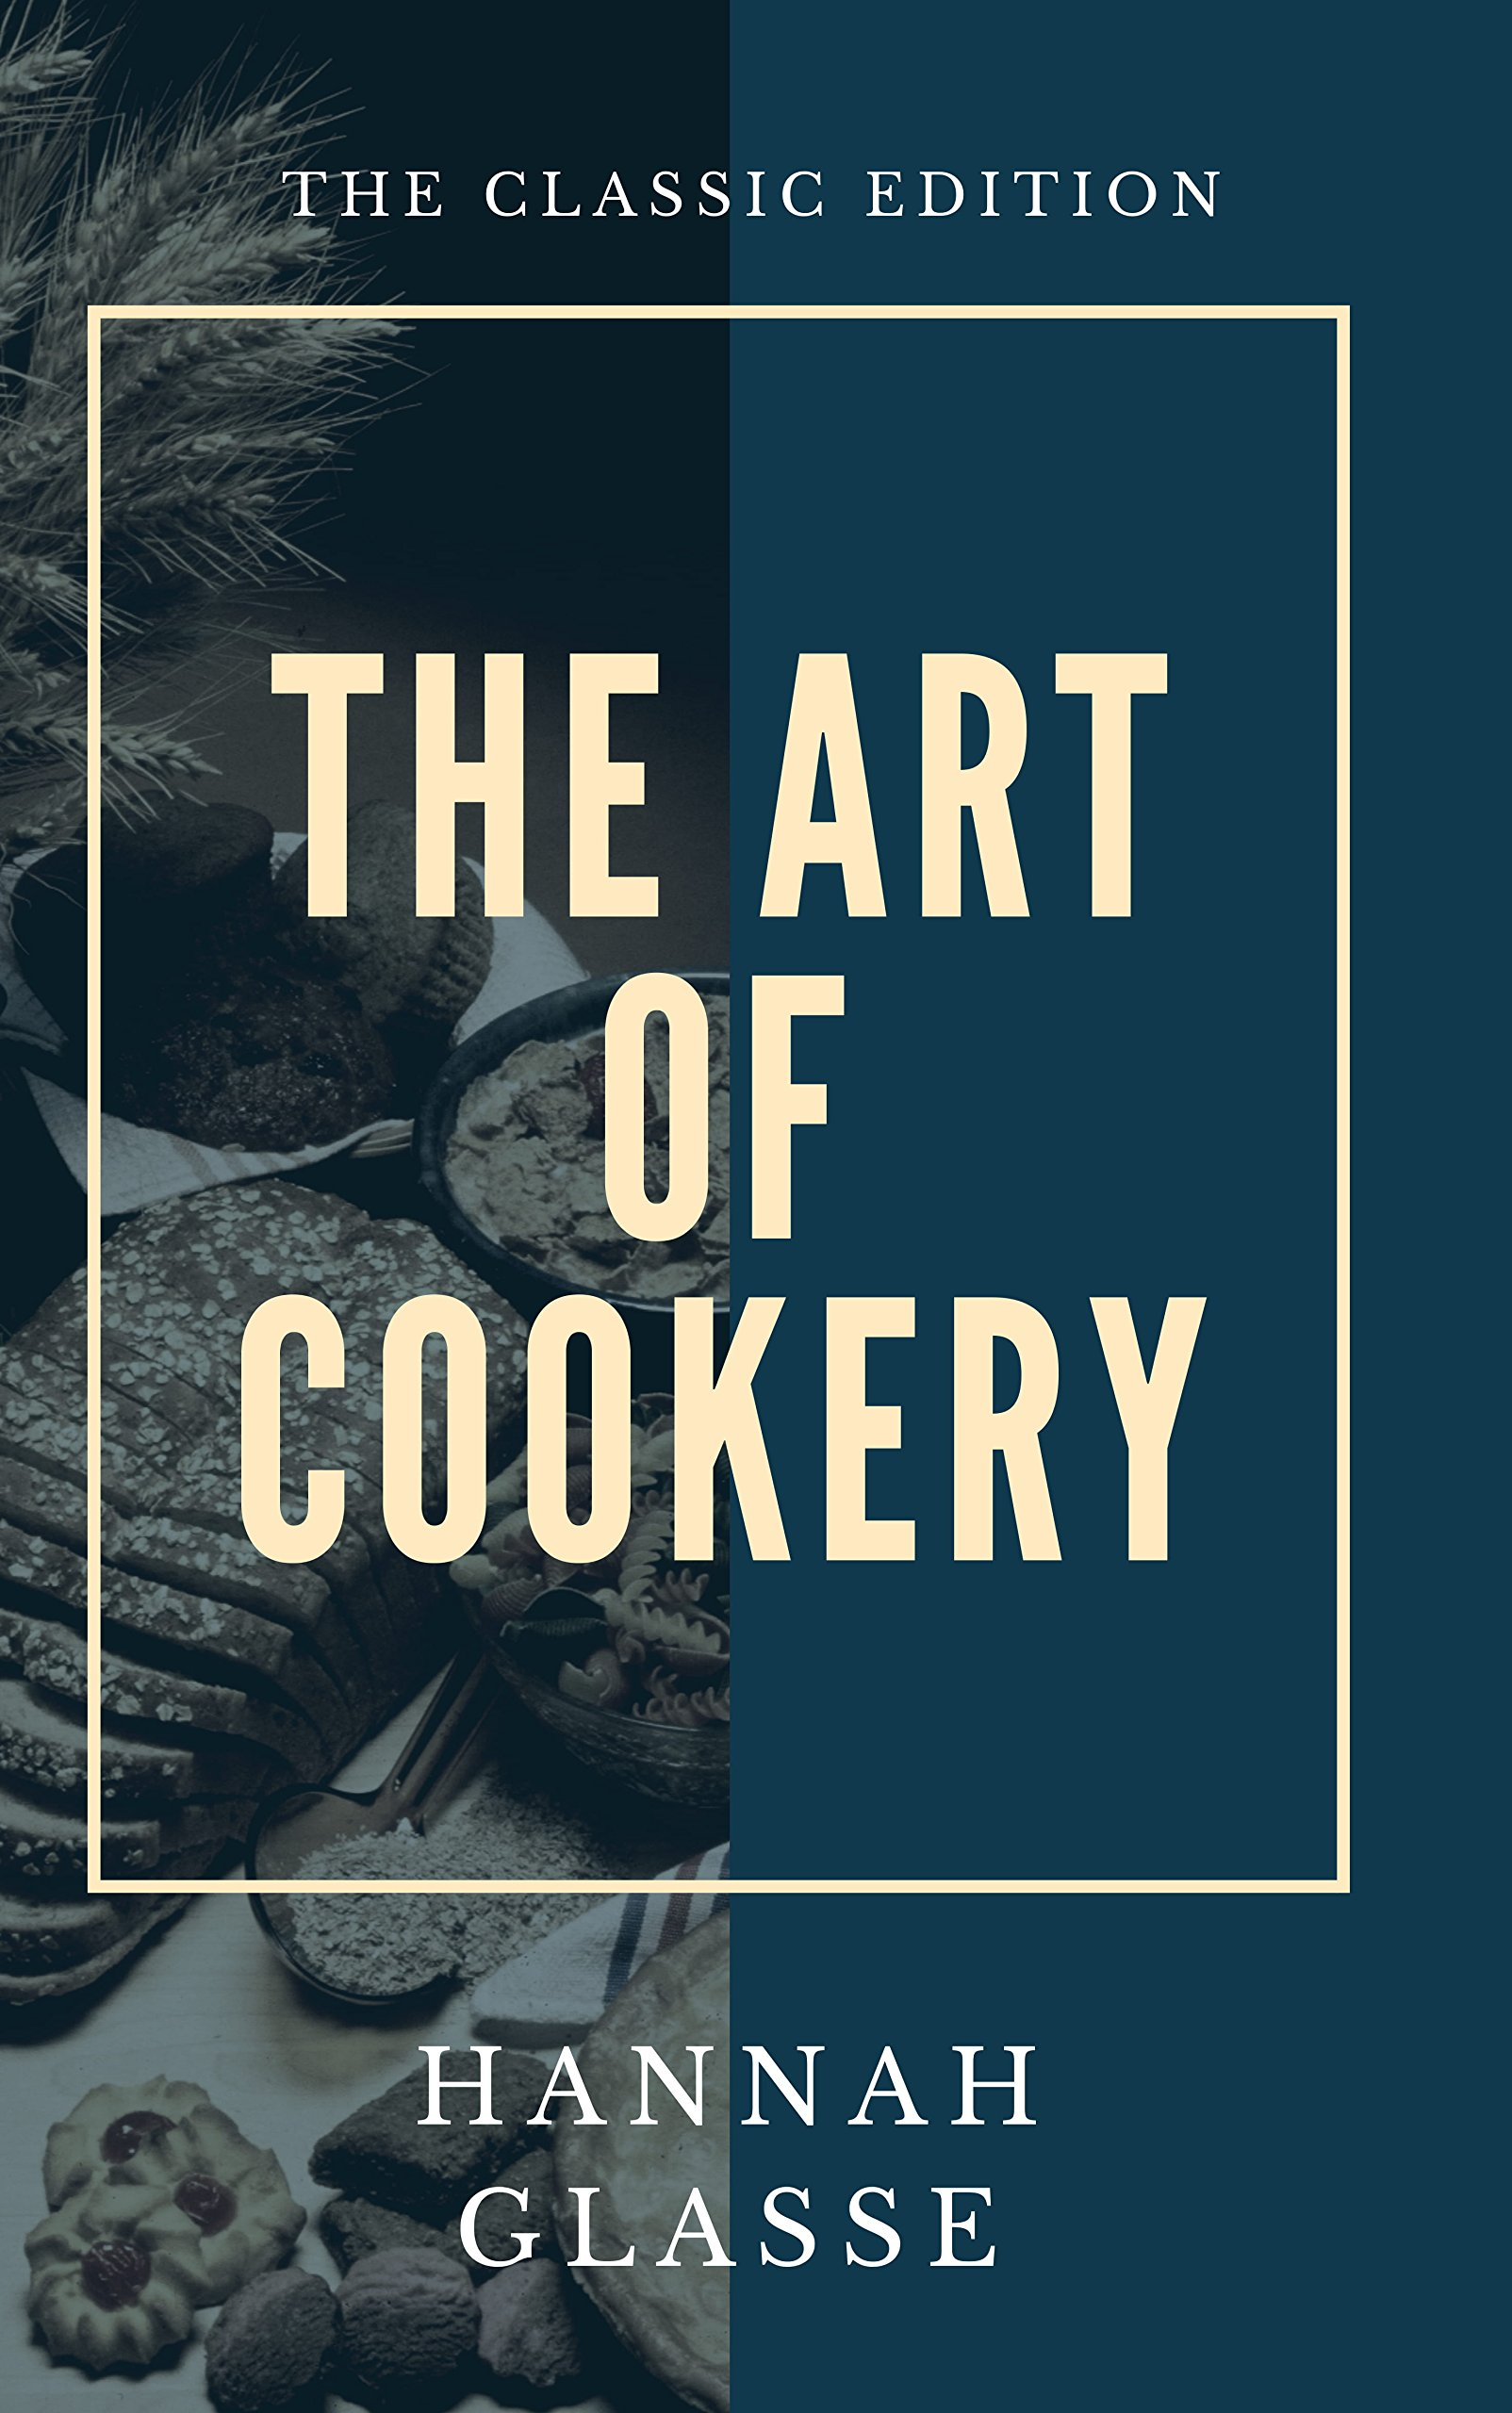 Image OfThe Art Of Cookery, Made Plain And Easy: Which Far Exceeds Any Thing Of The Kind Yet Published